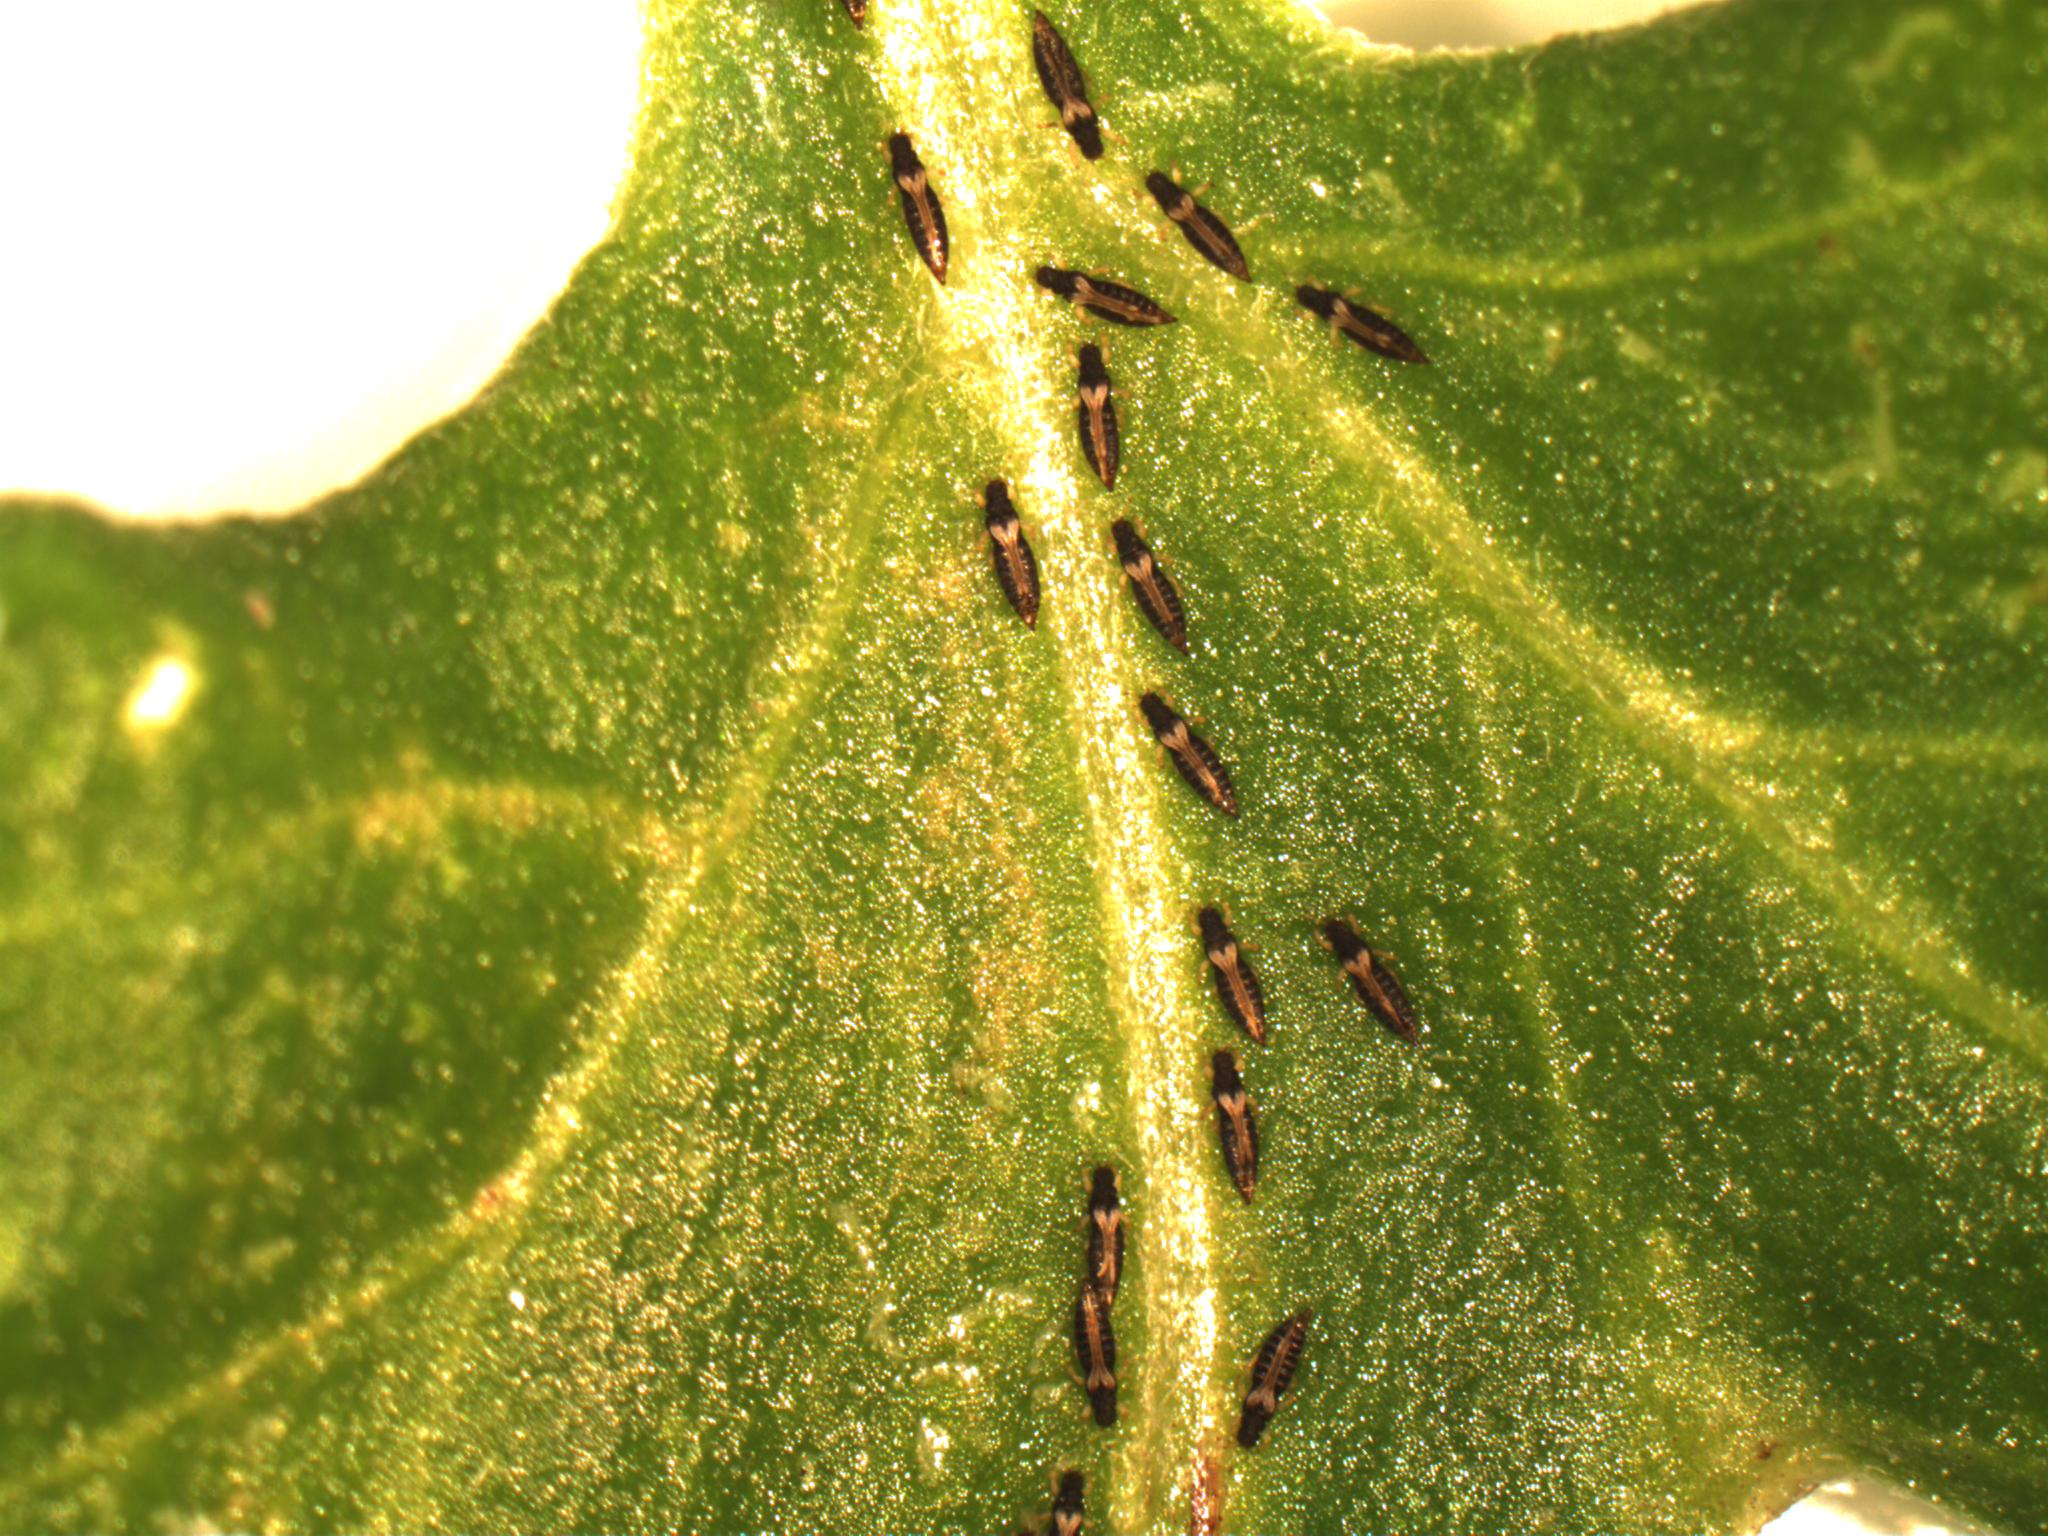 Adults feeding on leaf